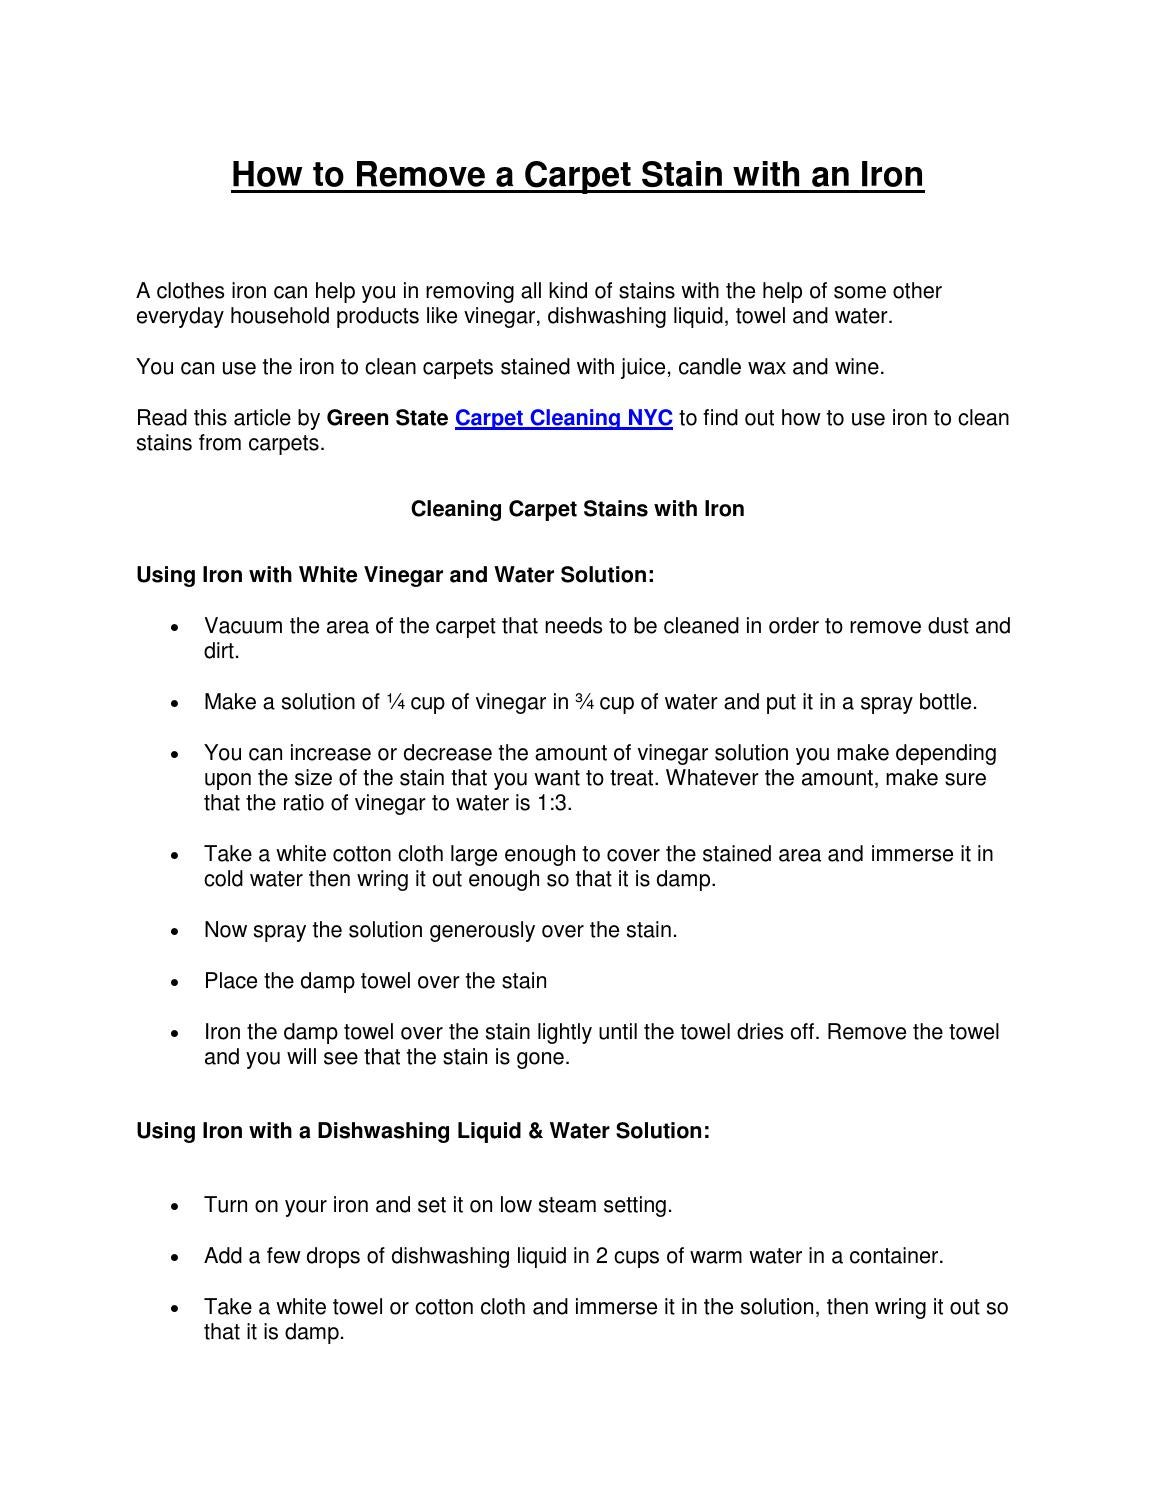 How to remove a carpet stain with an iron by Green State Carpet Cleaning NYC - issuu